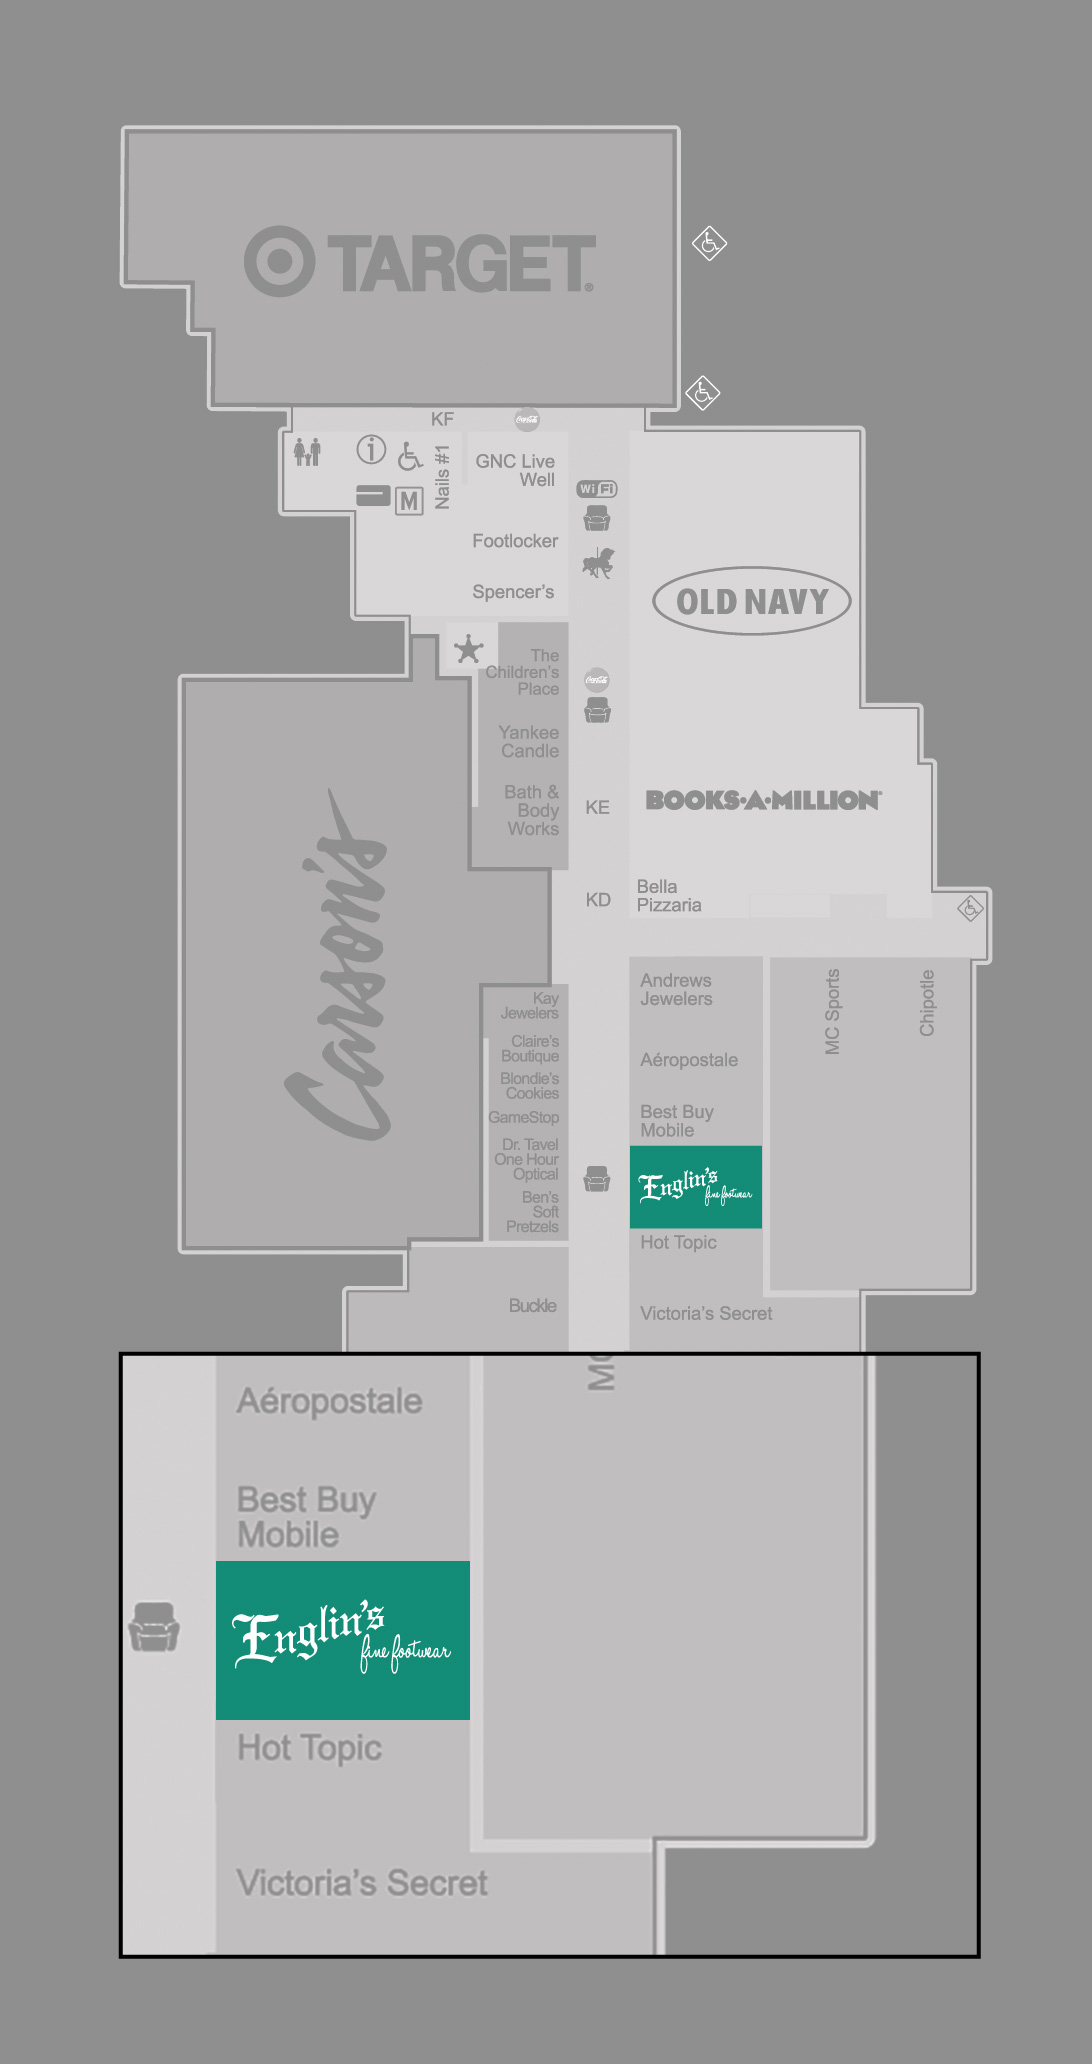 markland-mall-map-location-1.1.jpg